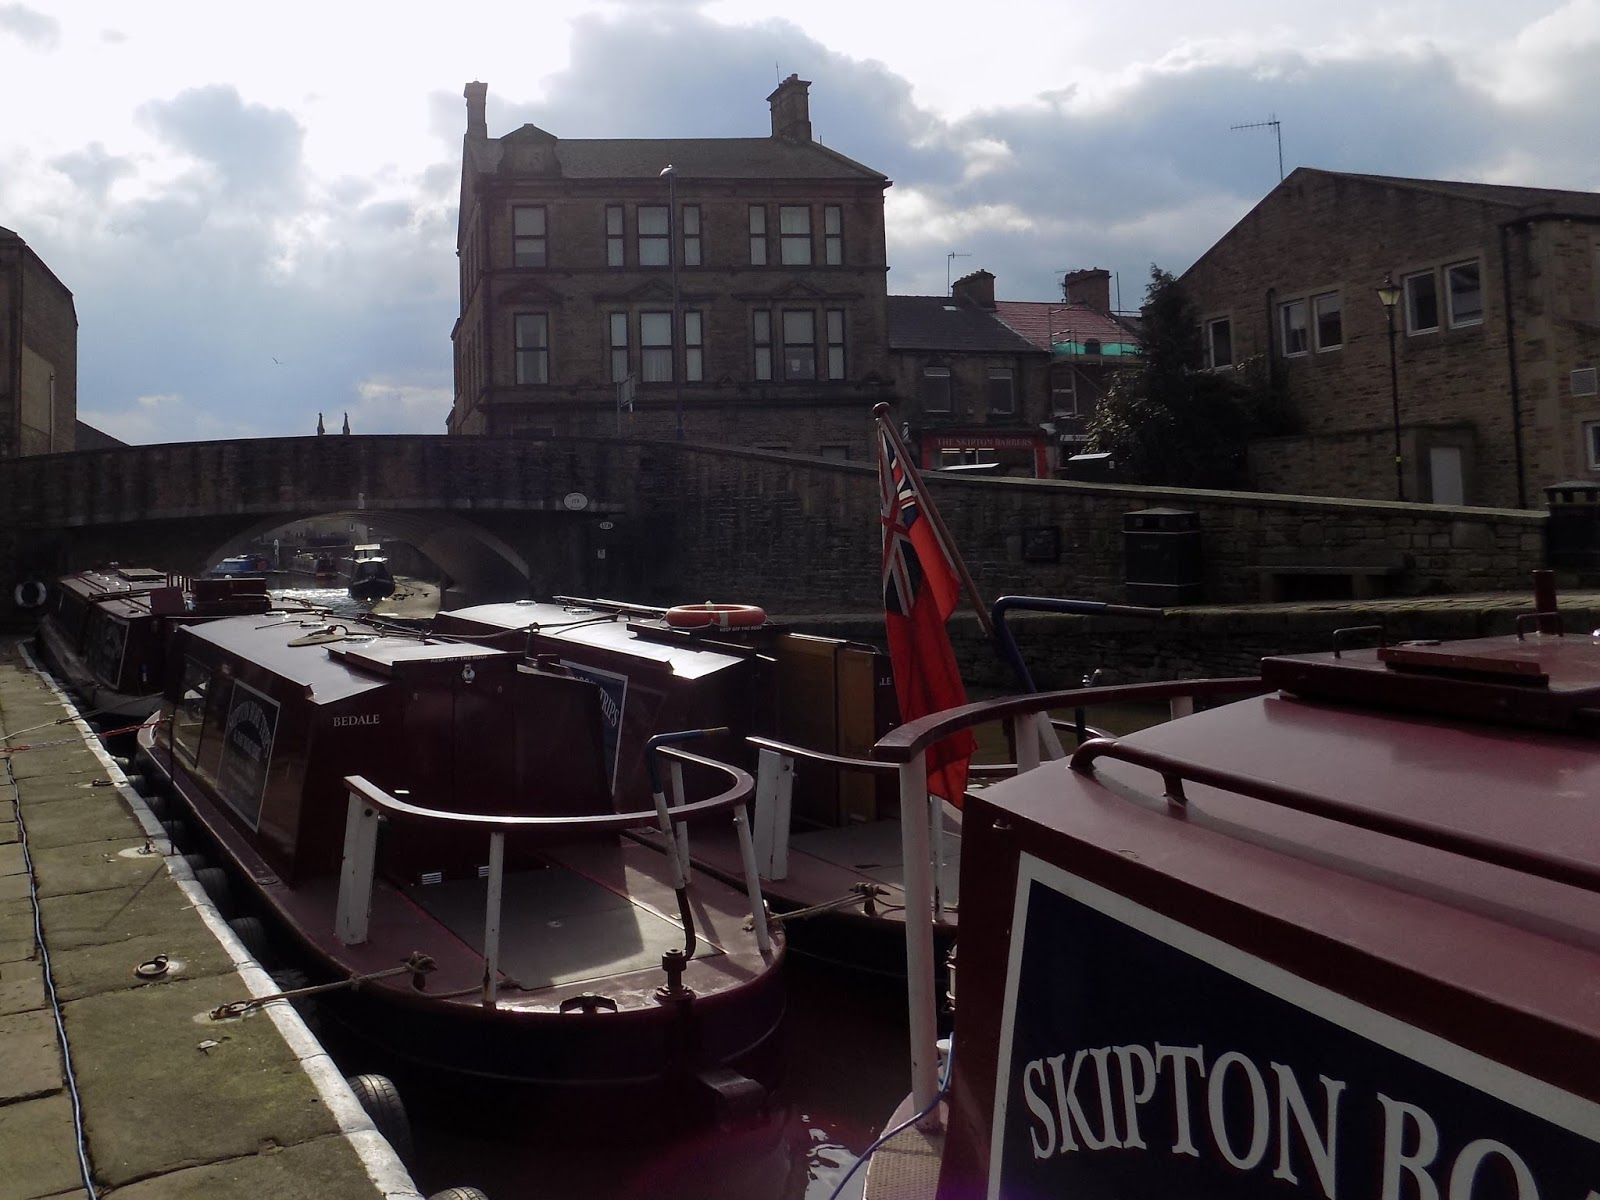 Skipton canal boat